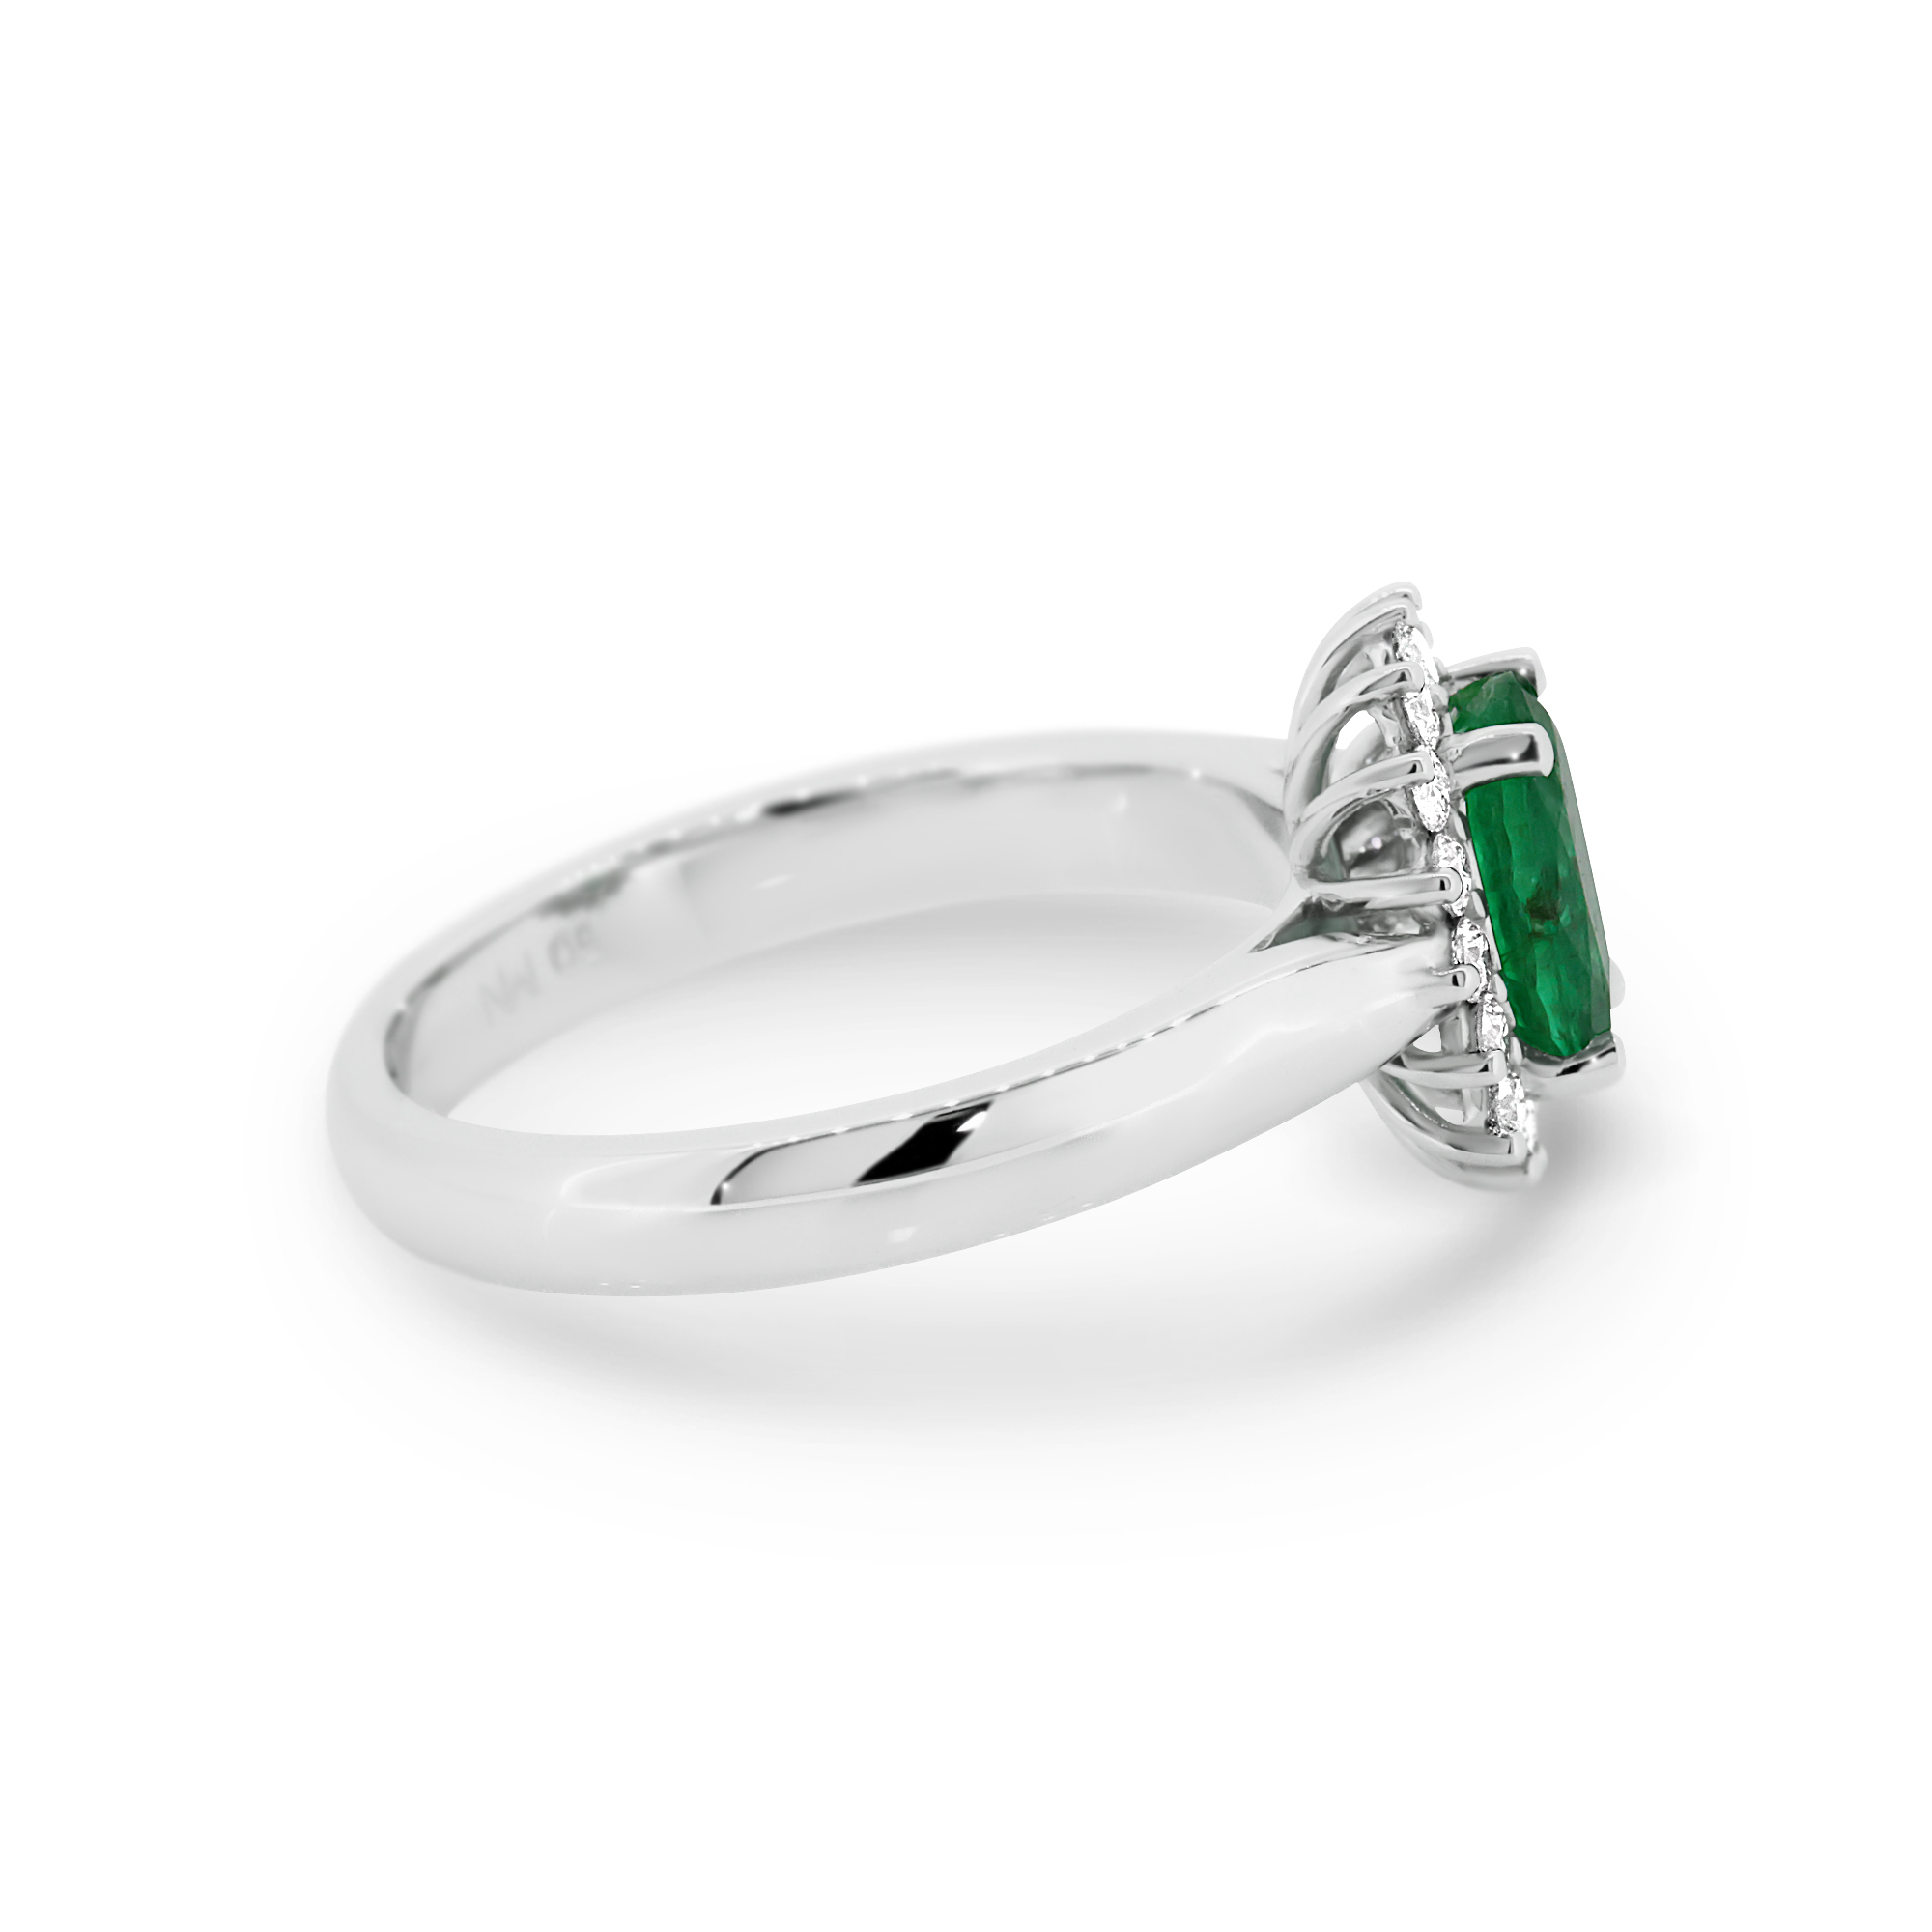 ring crop devotion upscale false emerald product faberg faberge editor scale shop subsampling the african jewellery